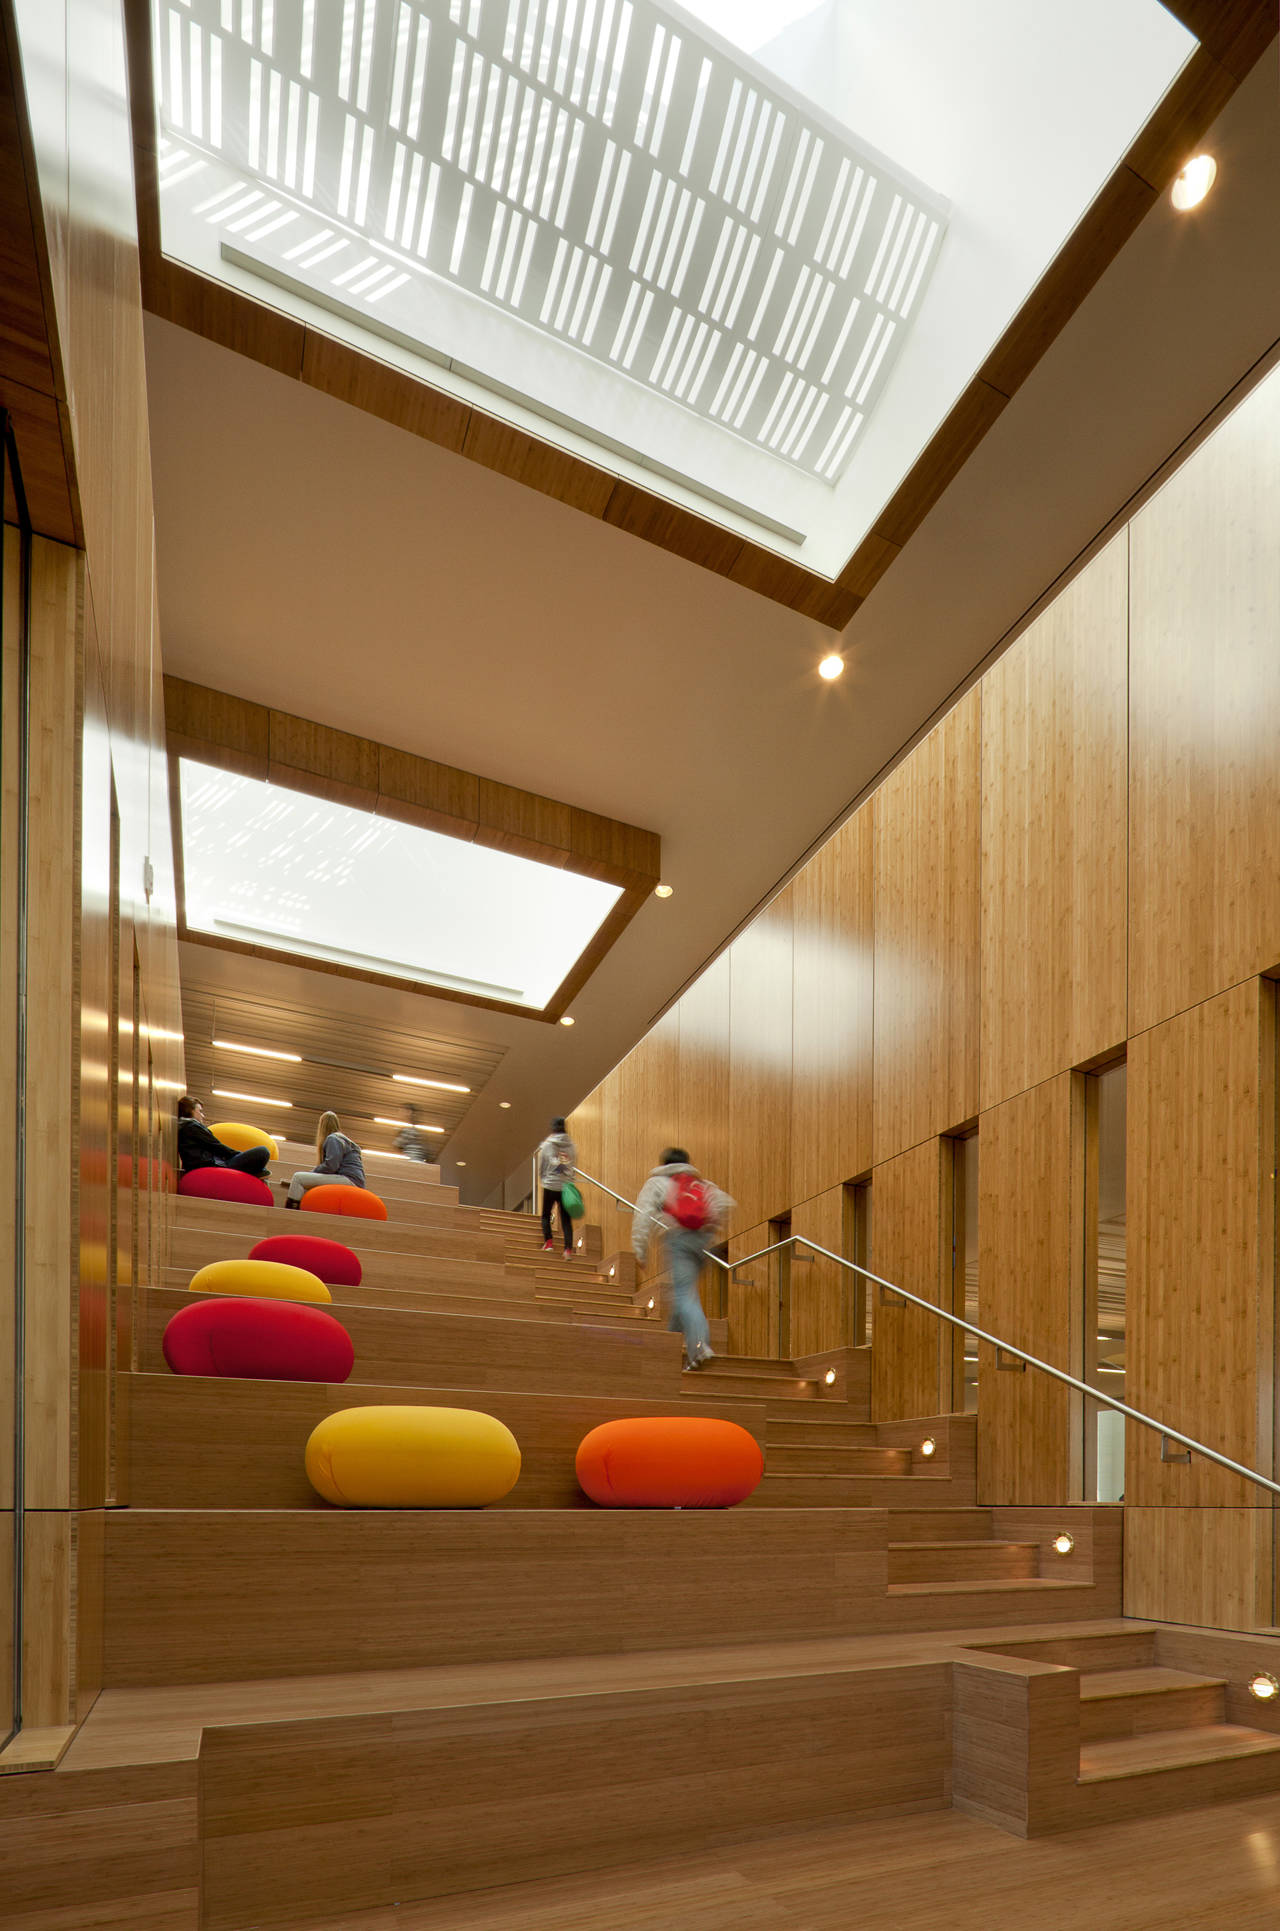 Golden west college by steinberg architects karmatrendz - What do you learn in interior design school ...